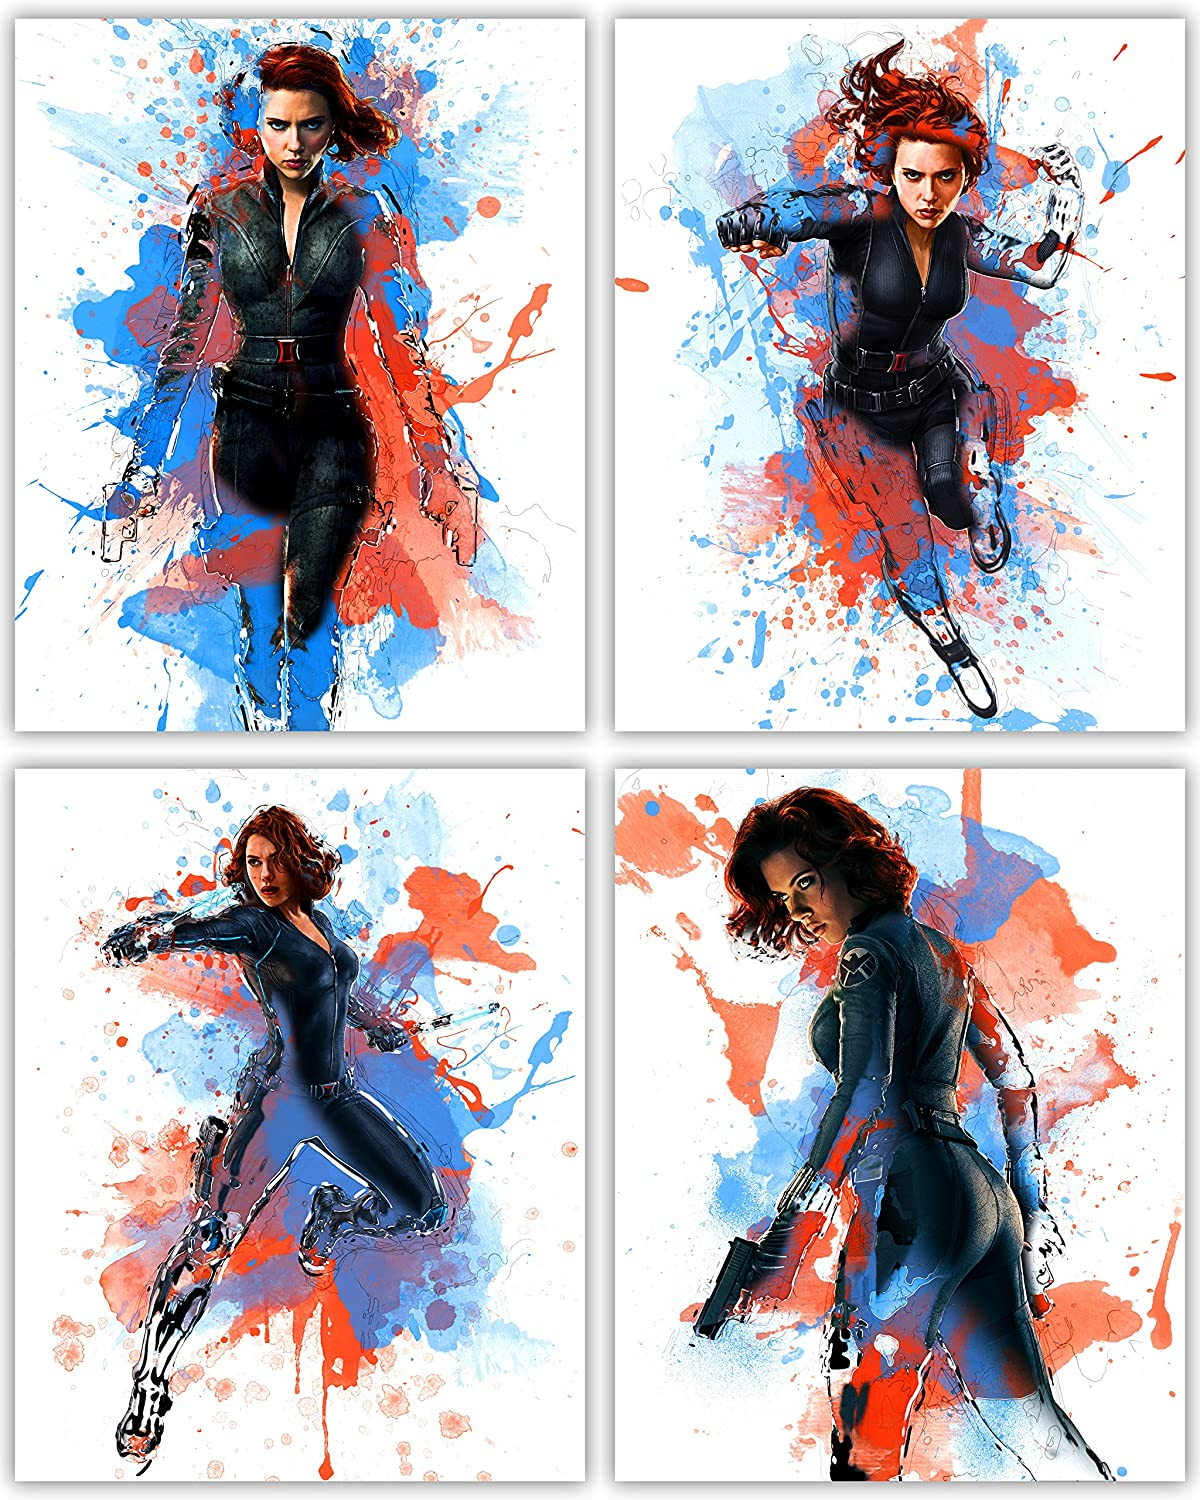 Black Widow Poster Collection -Scarlett Johansson as The Great Avenger in Our Wall Art Movie Print Series - Set of 4 8x10 Photos